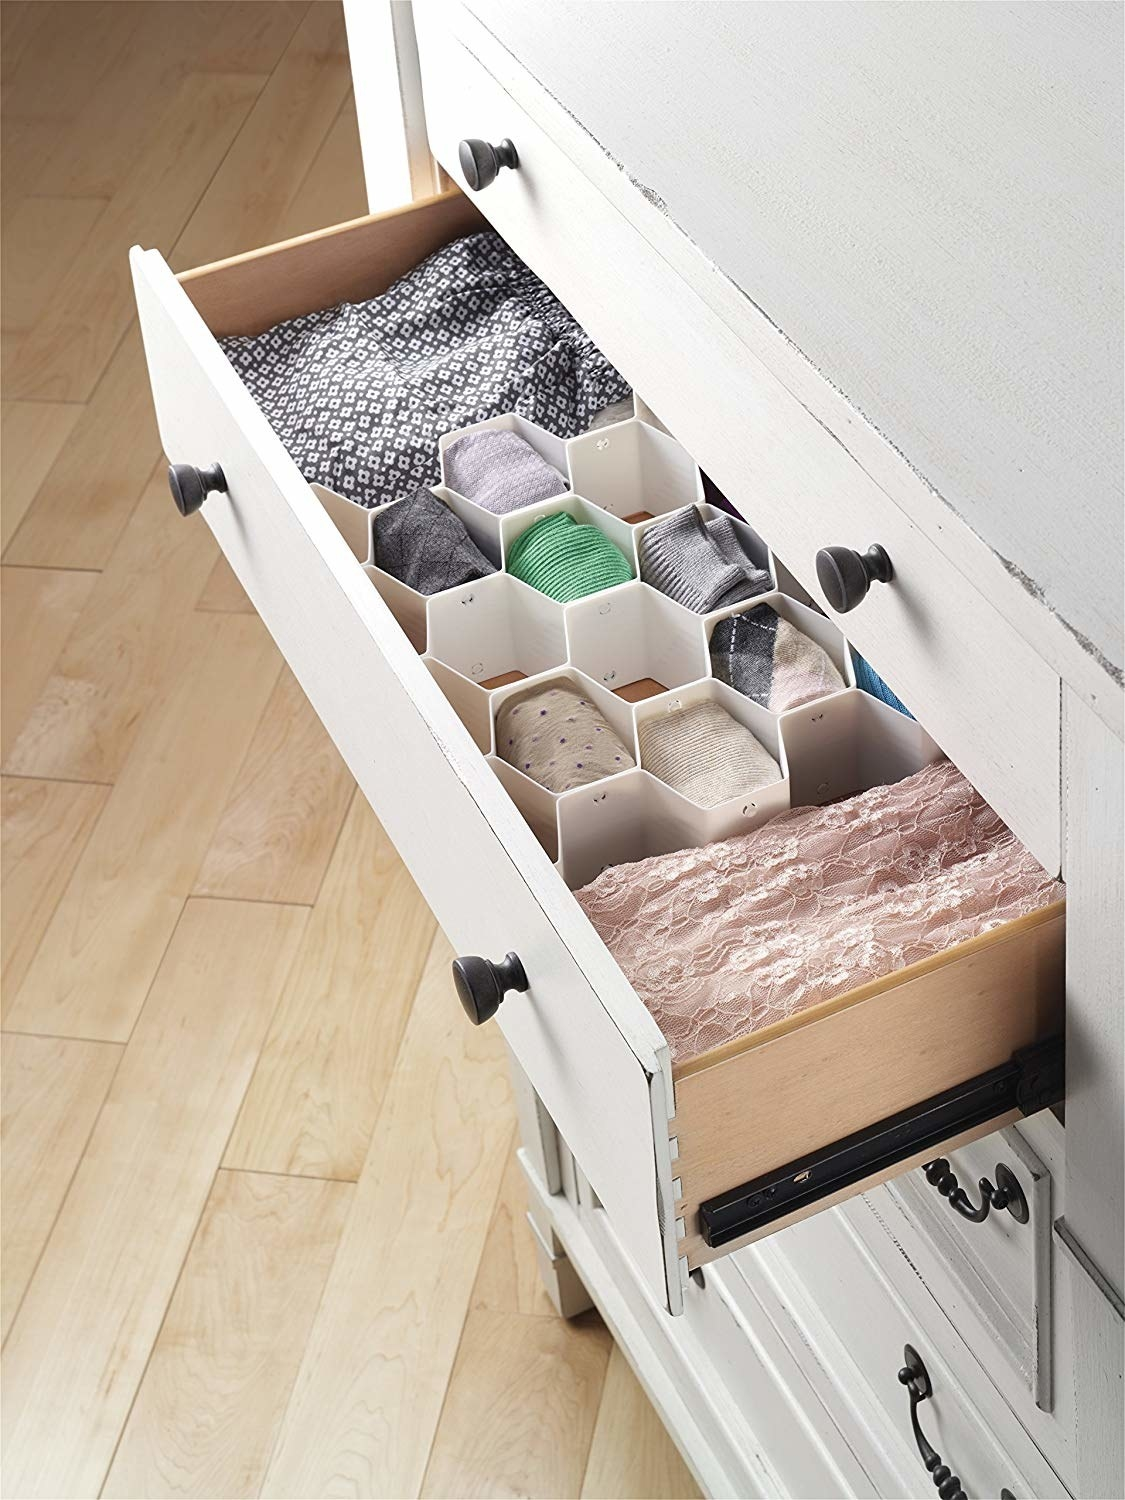 The organizer with honeycomb-shaped spaces inside a drawer